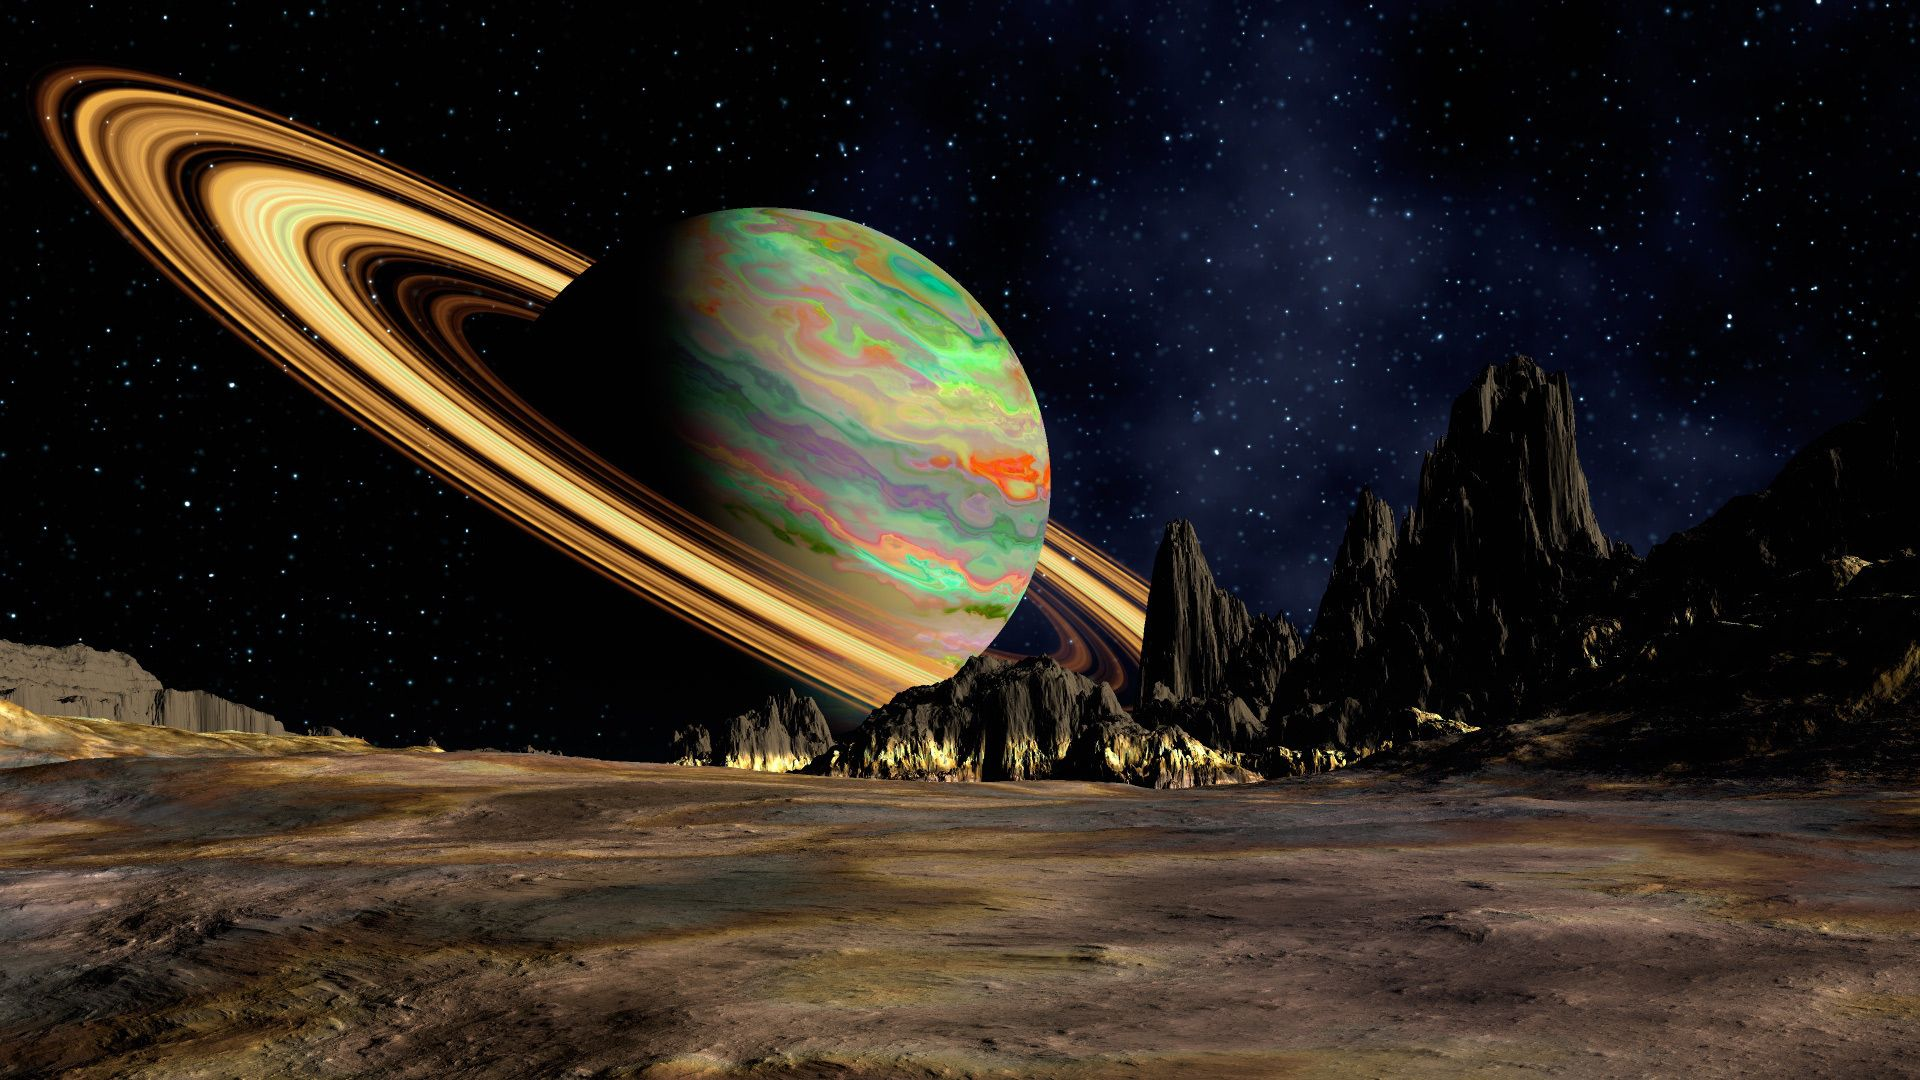 من ما يتكون زحل Saturn-is-a-gas-giant-because-it-is-predominantly-composed-of-hydrogen-and-helium